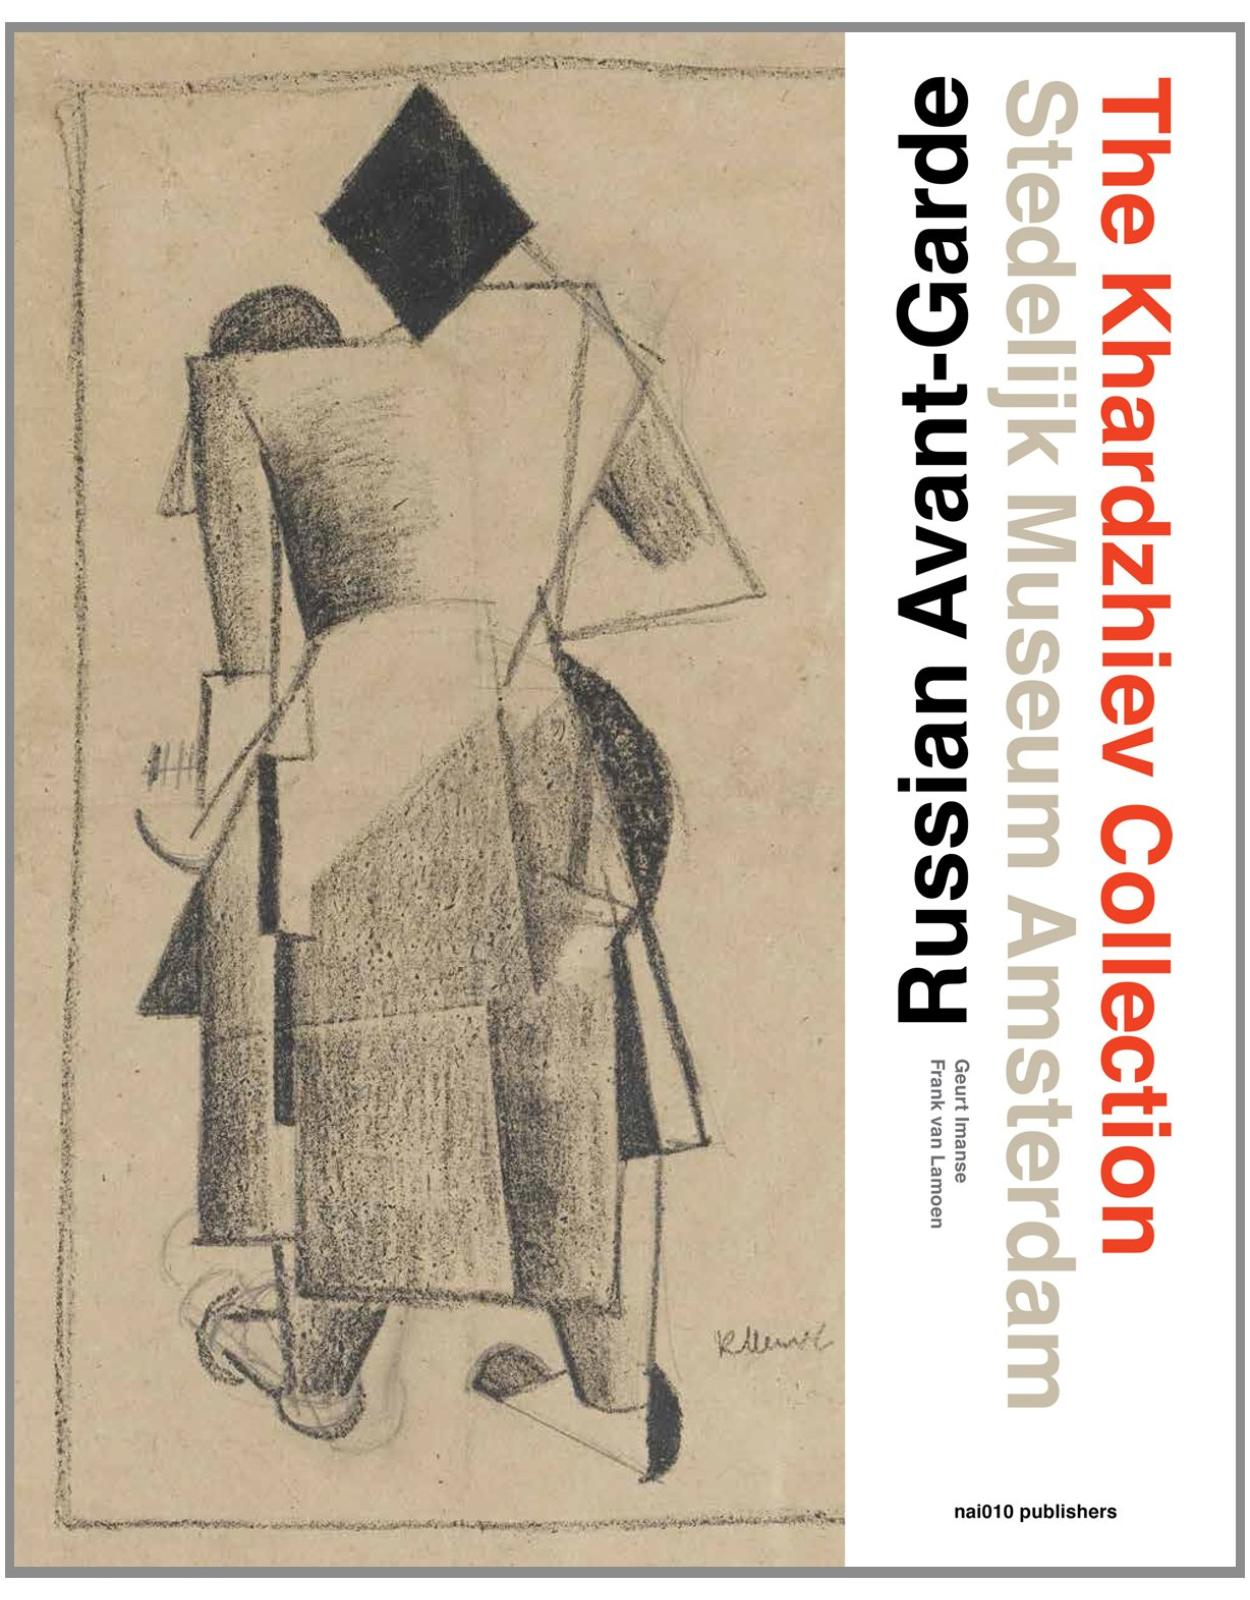 The Russian Avant-Garde - the Khardzhiev Collection at the Stedelijk Museum Amsterdam